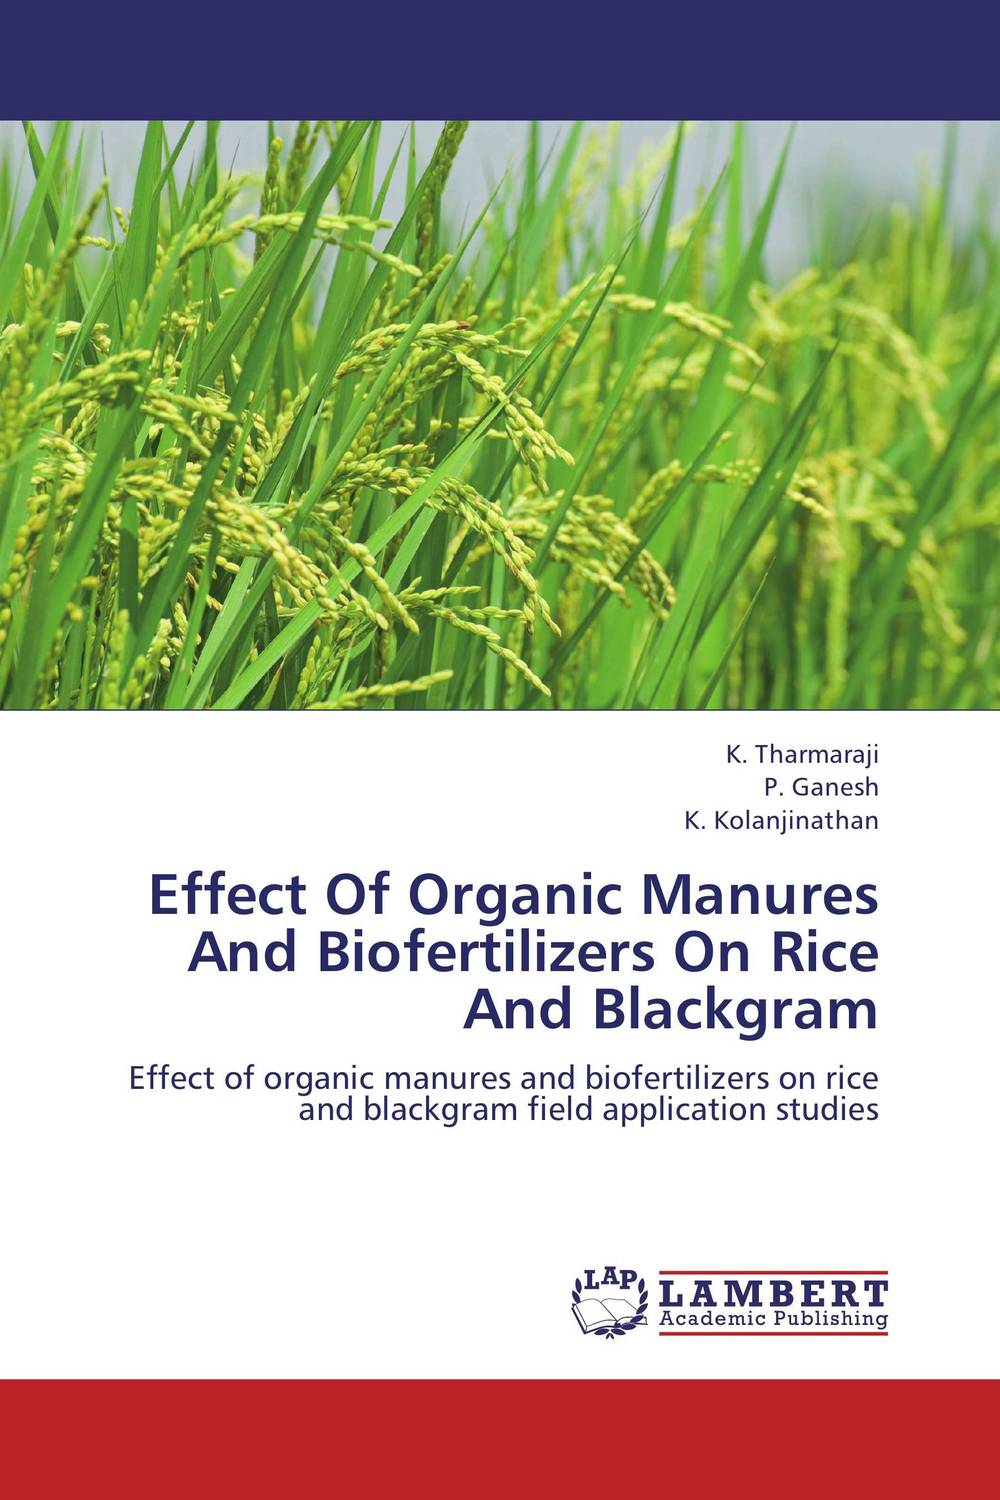 Effect Of Organic Manures And Biofertilizers On Rice And Blackgram k r k naidu a v ramana and r veeraraghavaiah common vetch management in rice fallow blackgram